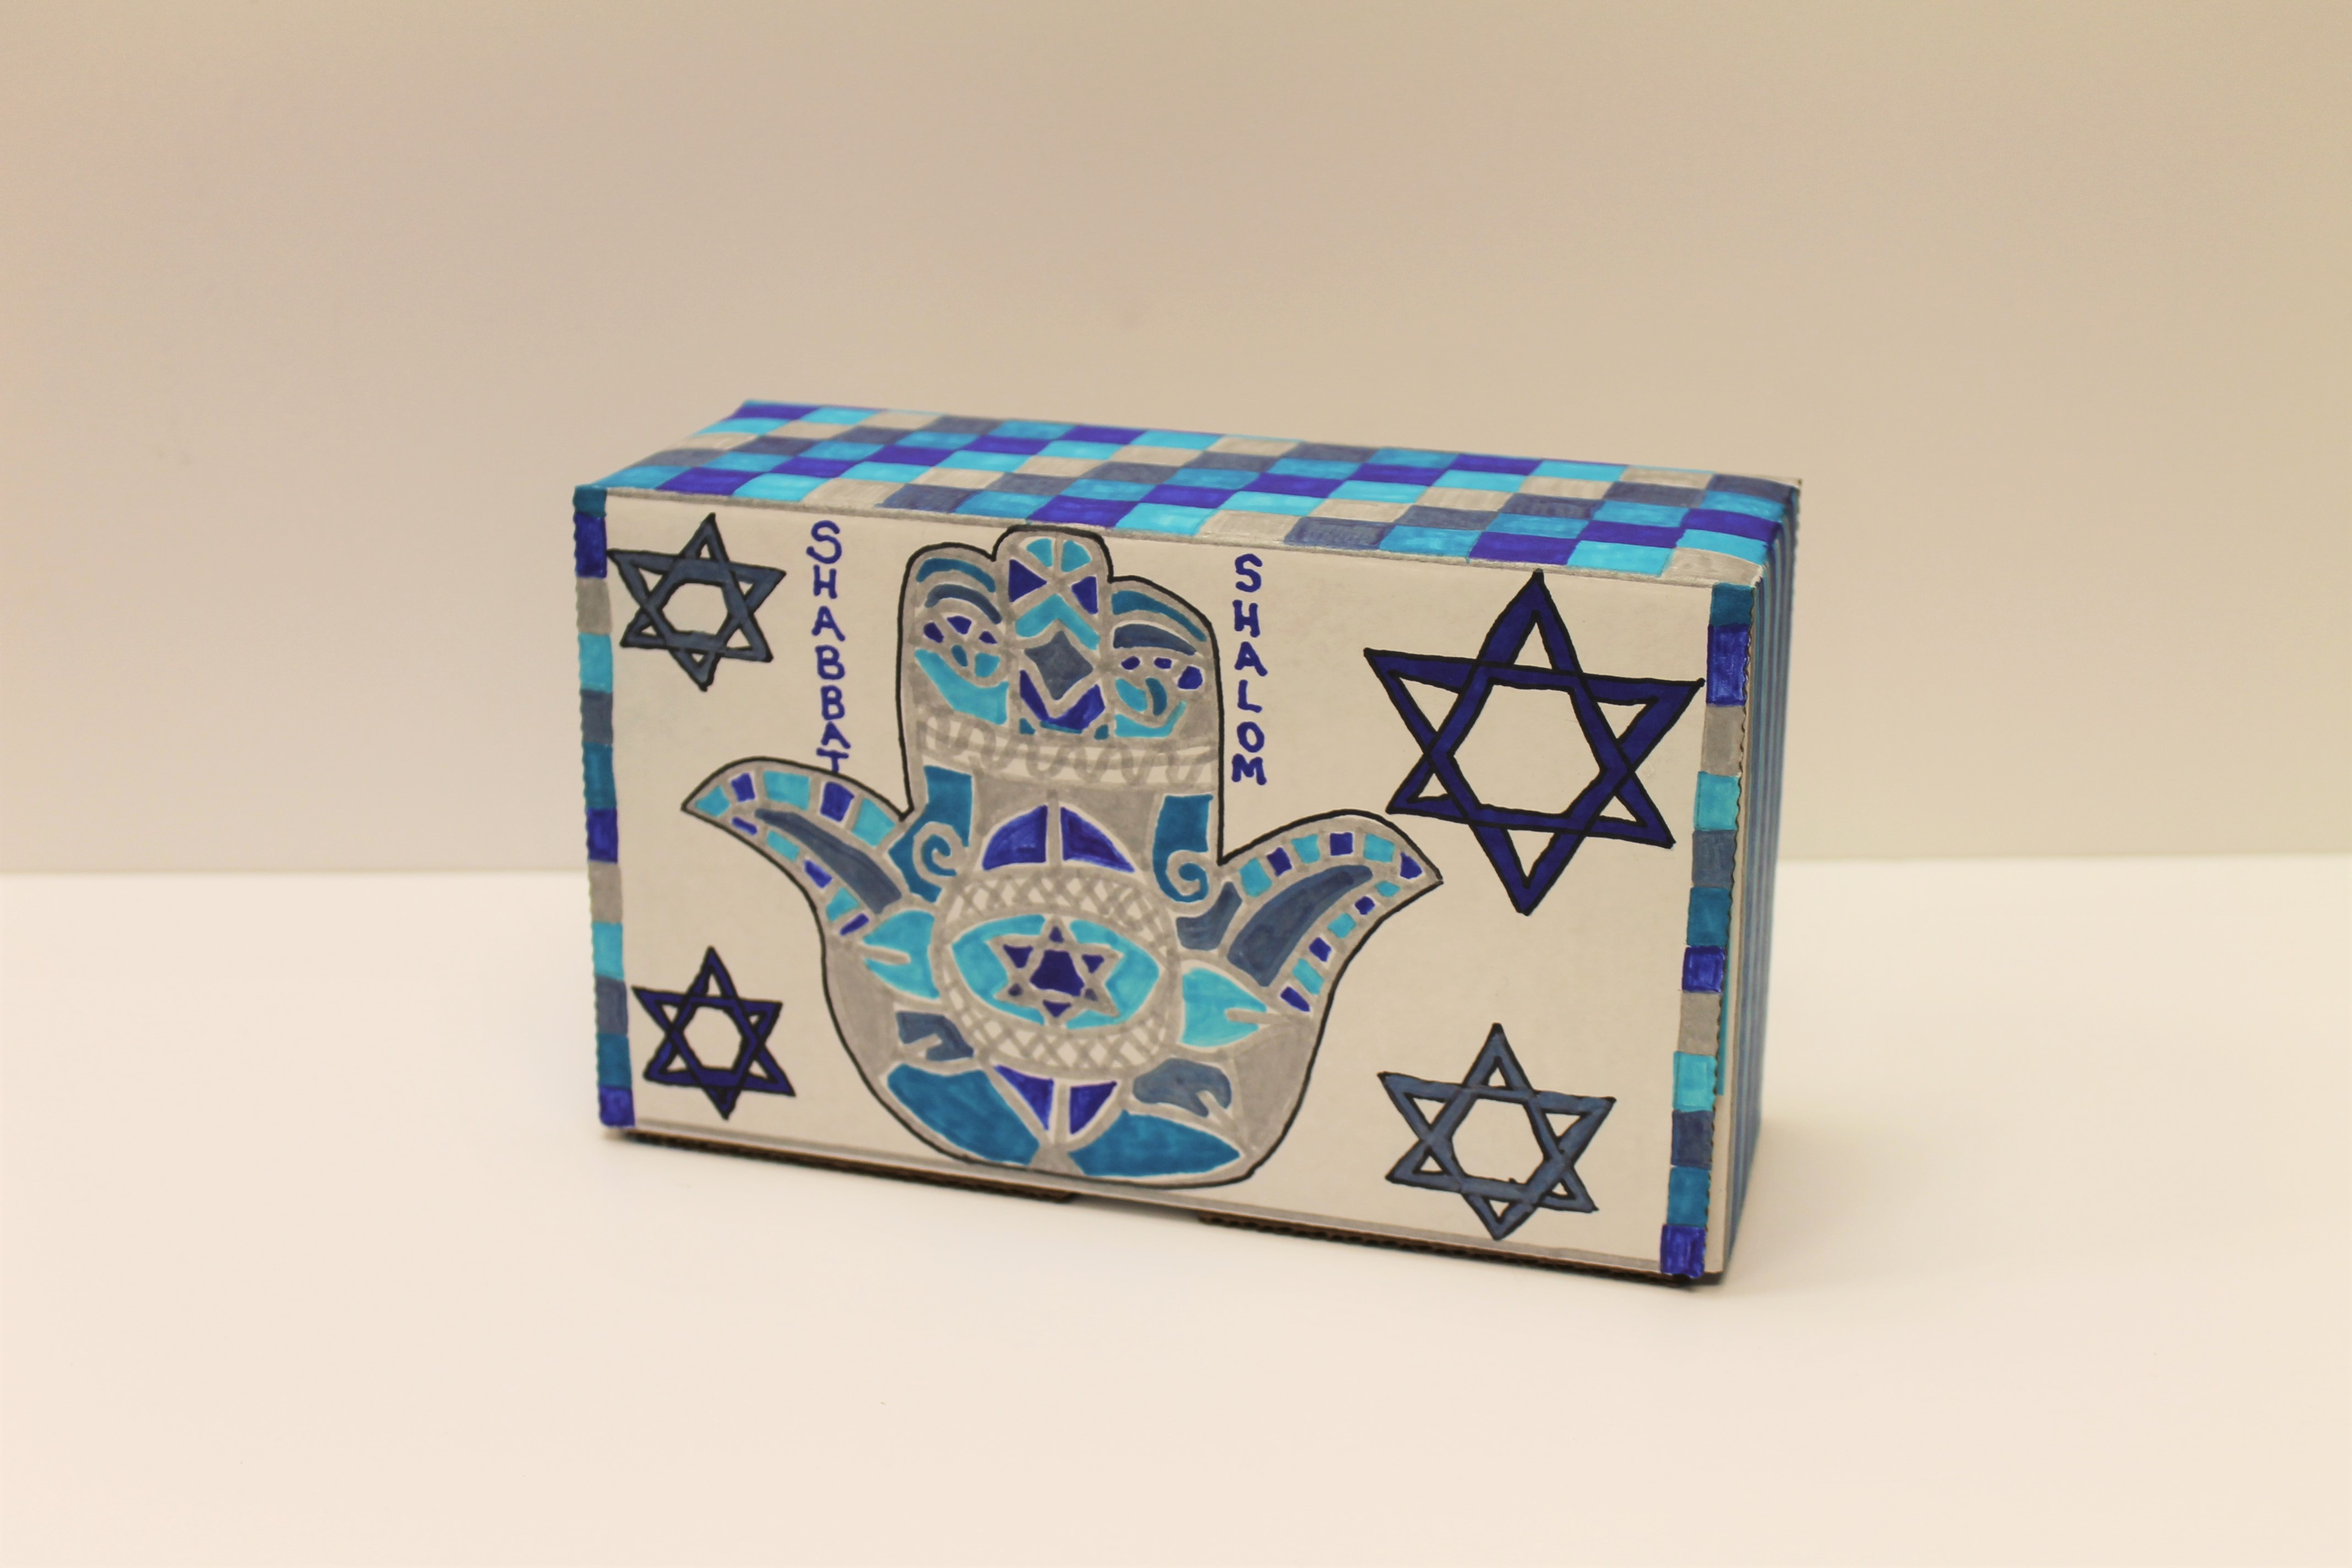 colorful drawings of the star of david